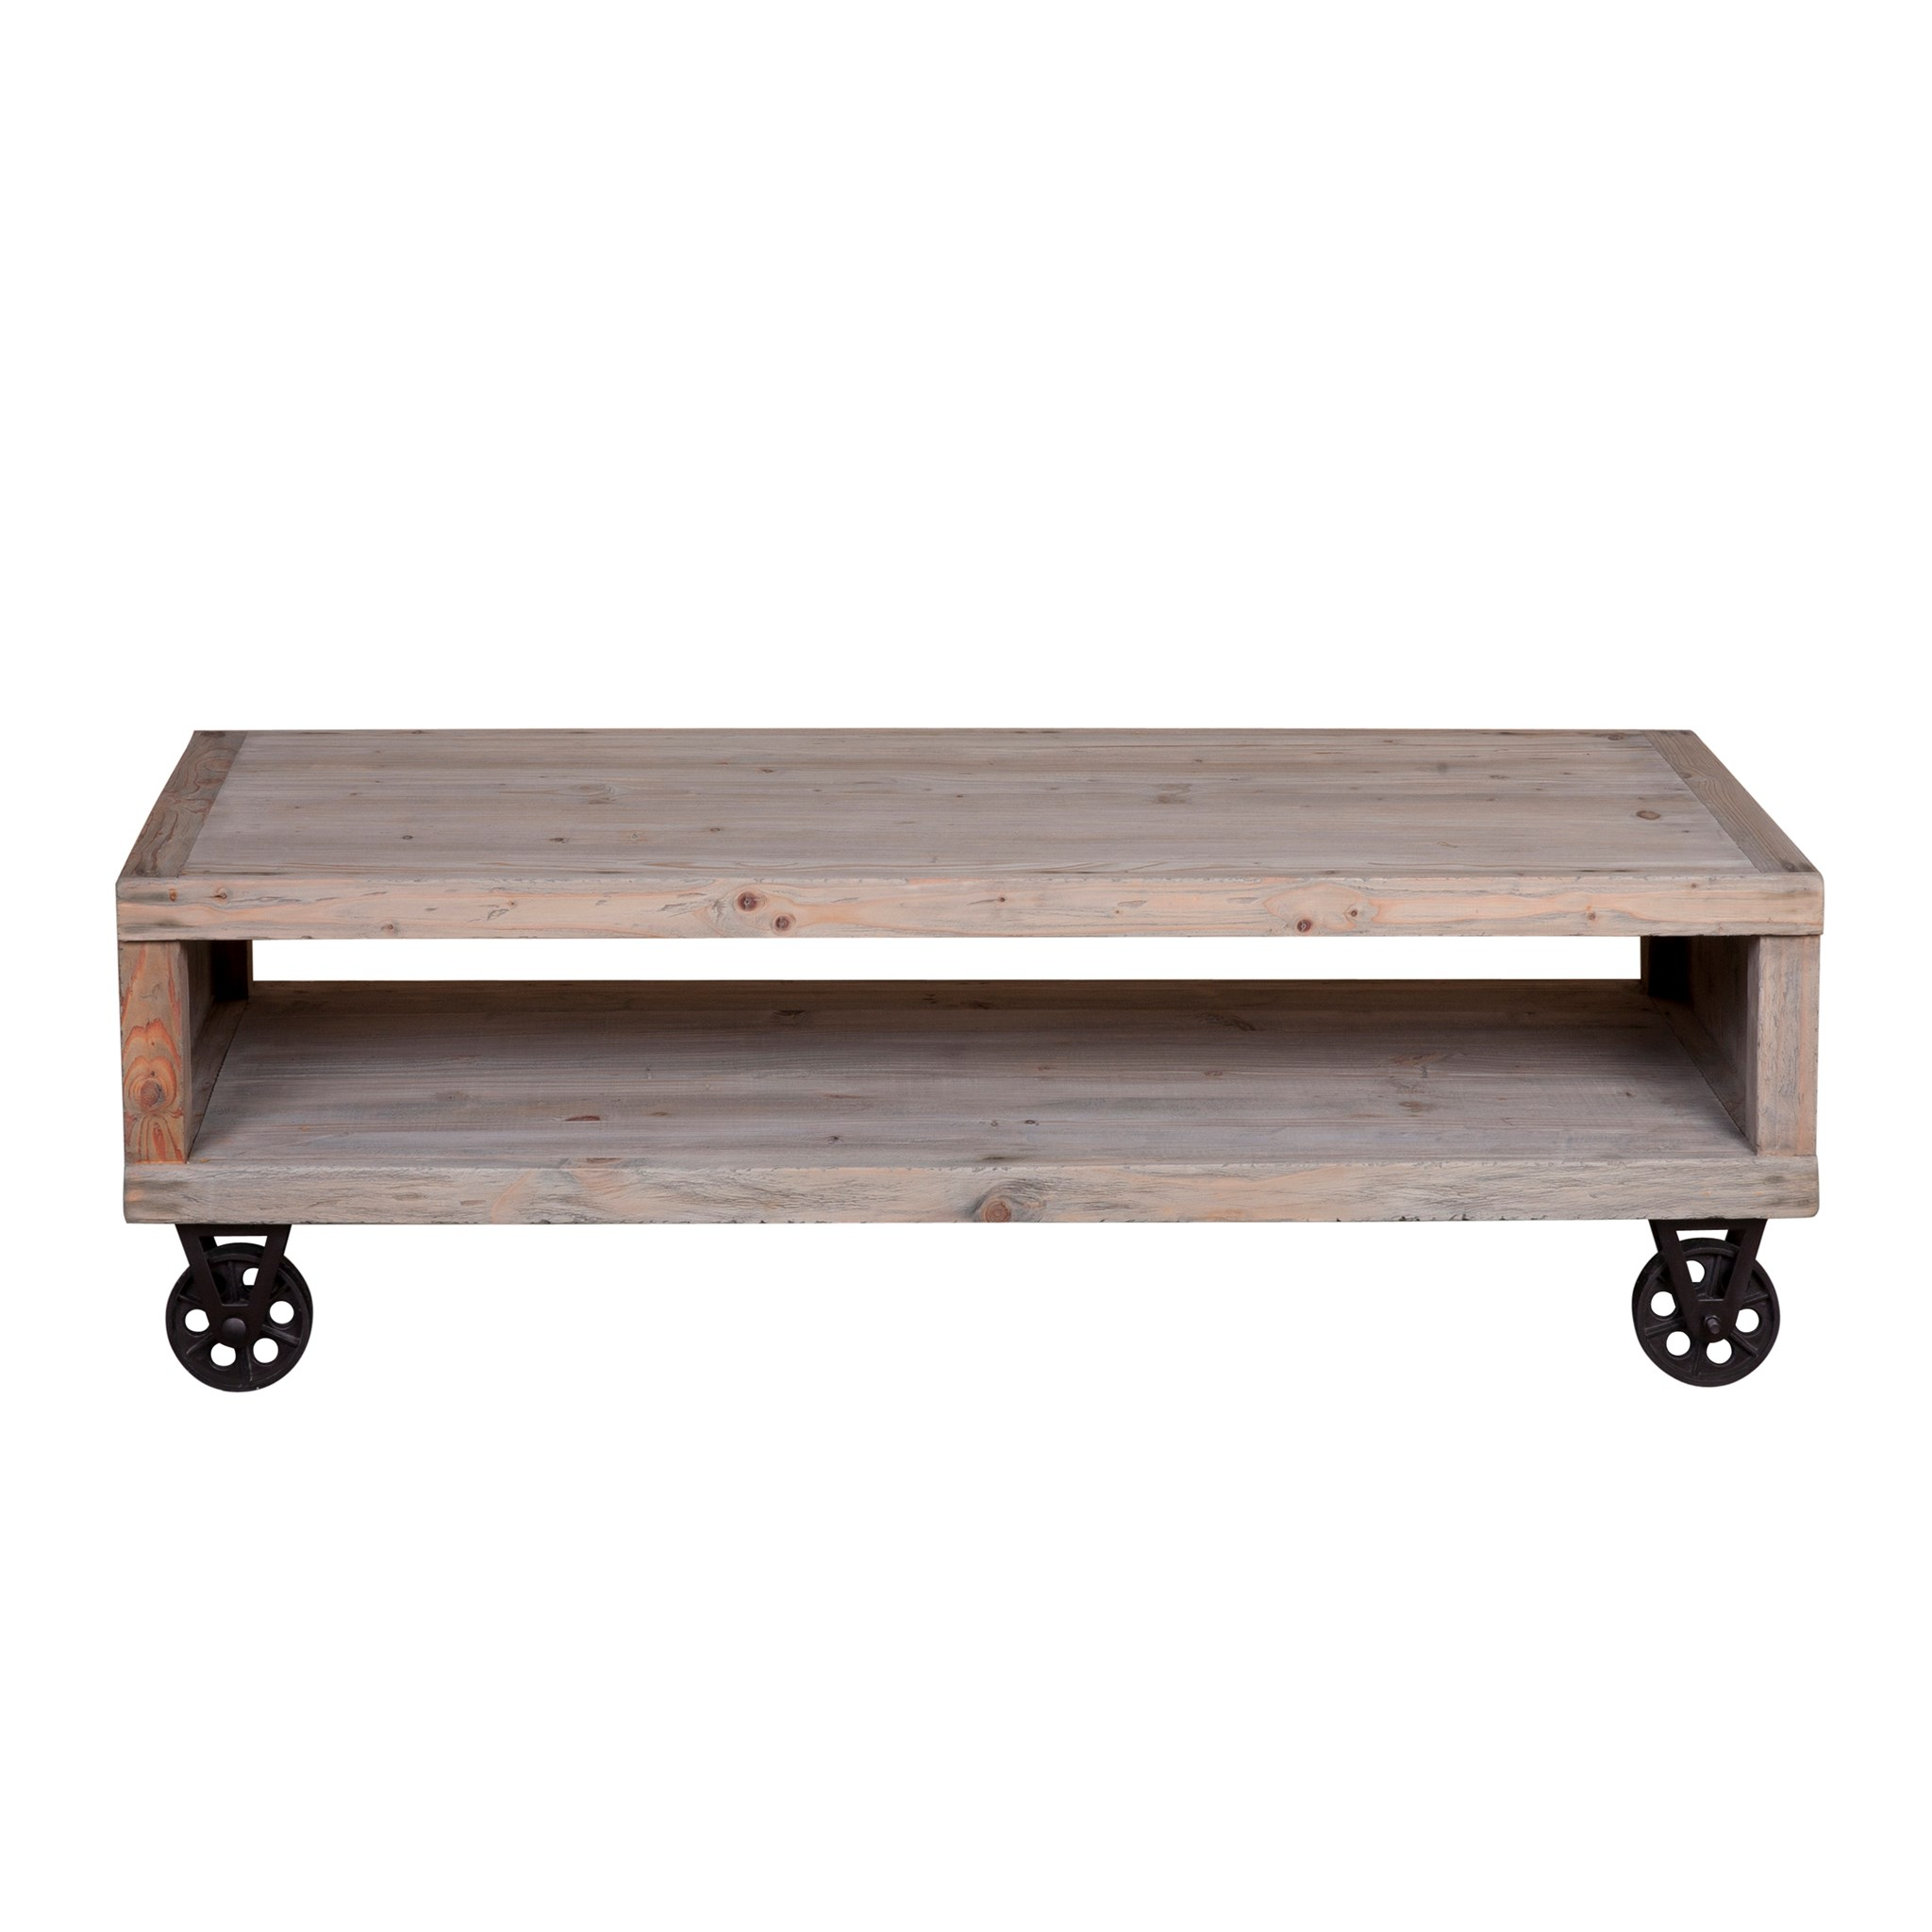 Cologne Soft Industrial Coffee Table With Metal Castors (K/D)Solid Pine Wood